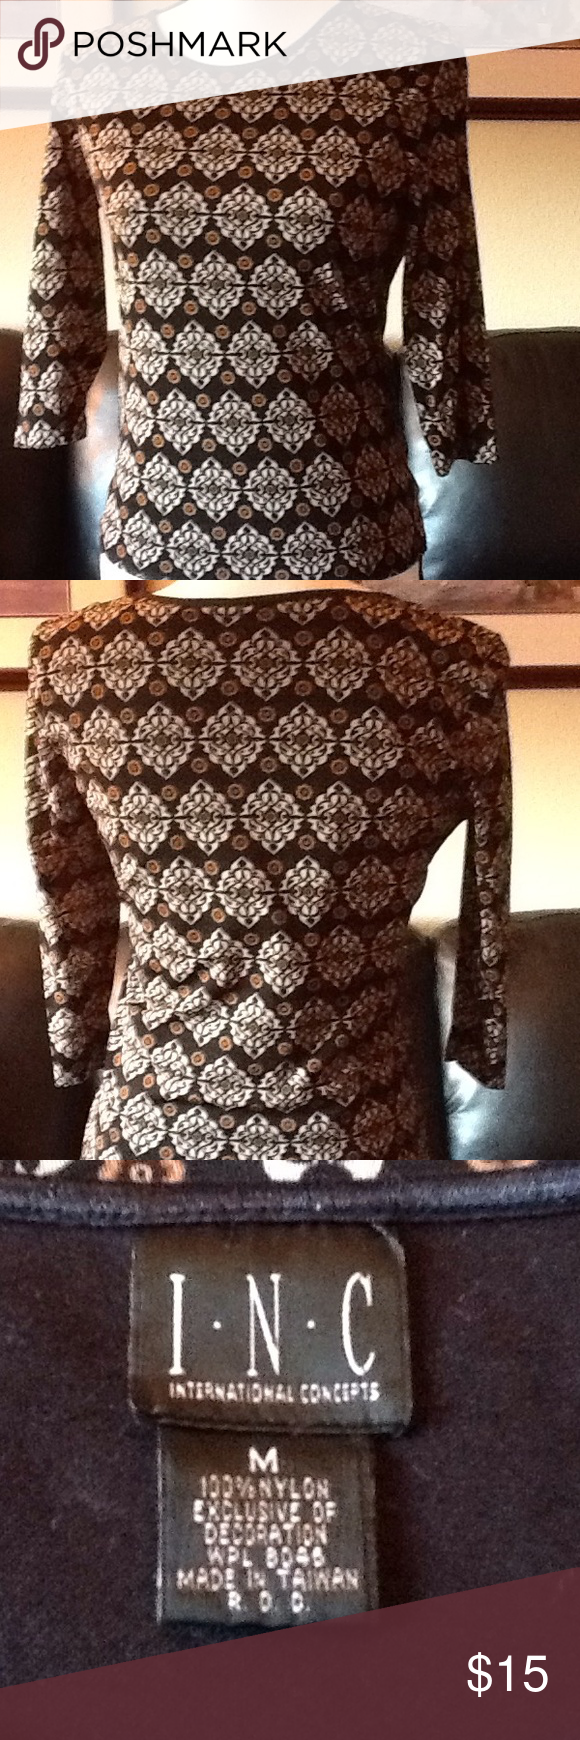 Inc 3/4 sleeve top 100% nylon, hand wash. Runs small. Used condition with normal wear. INC Tops